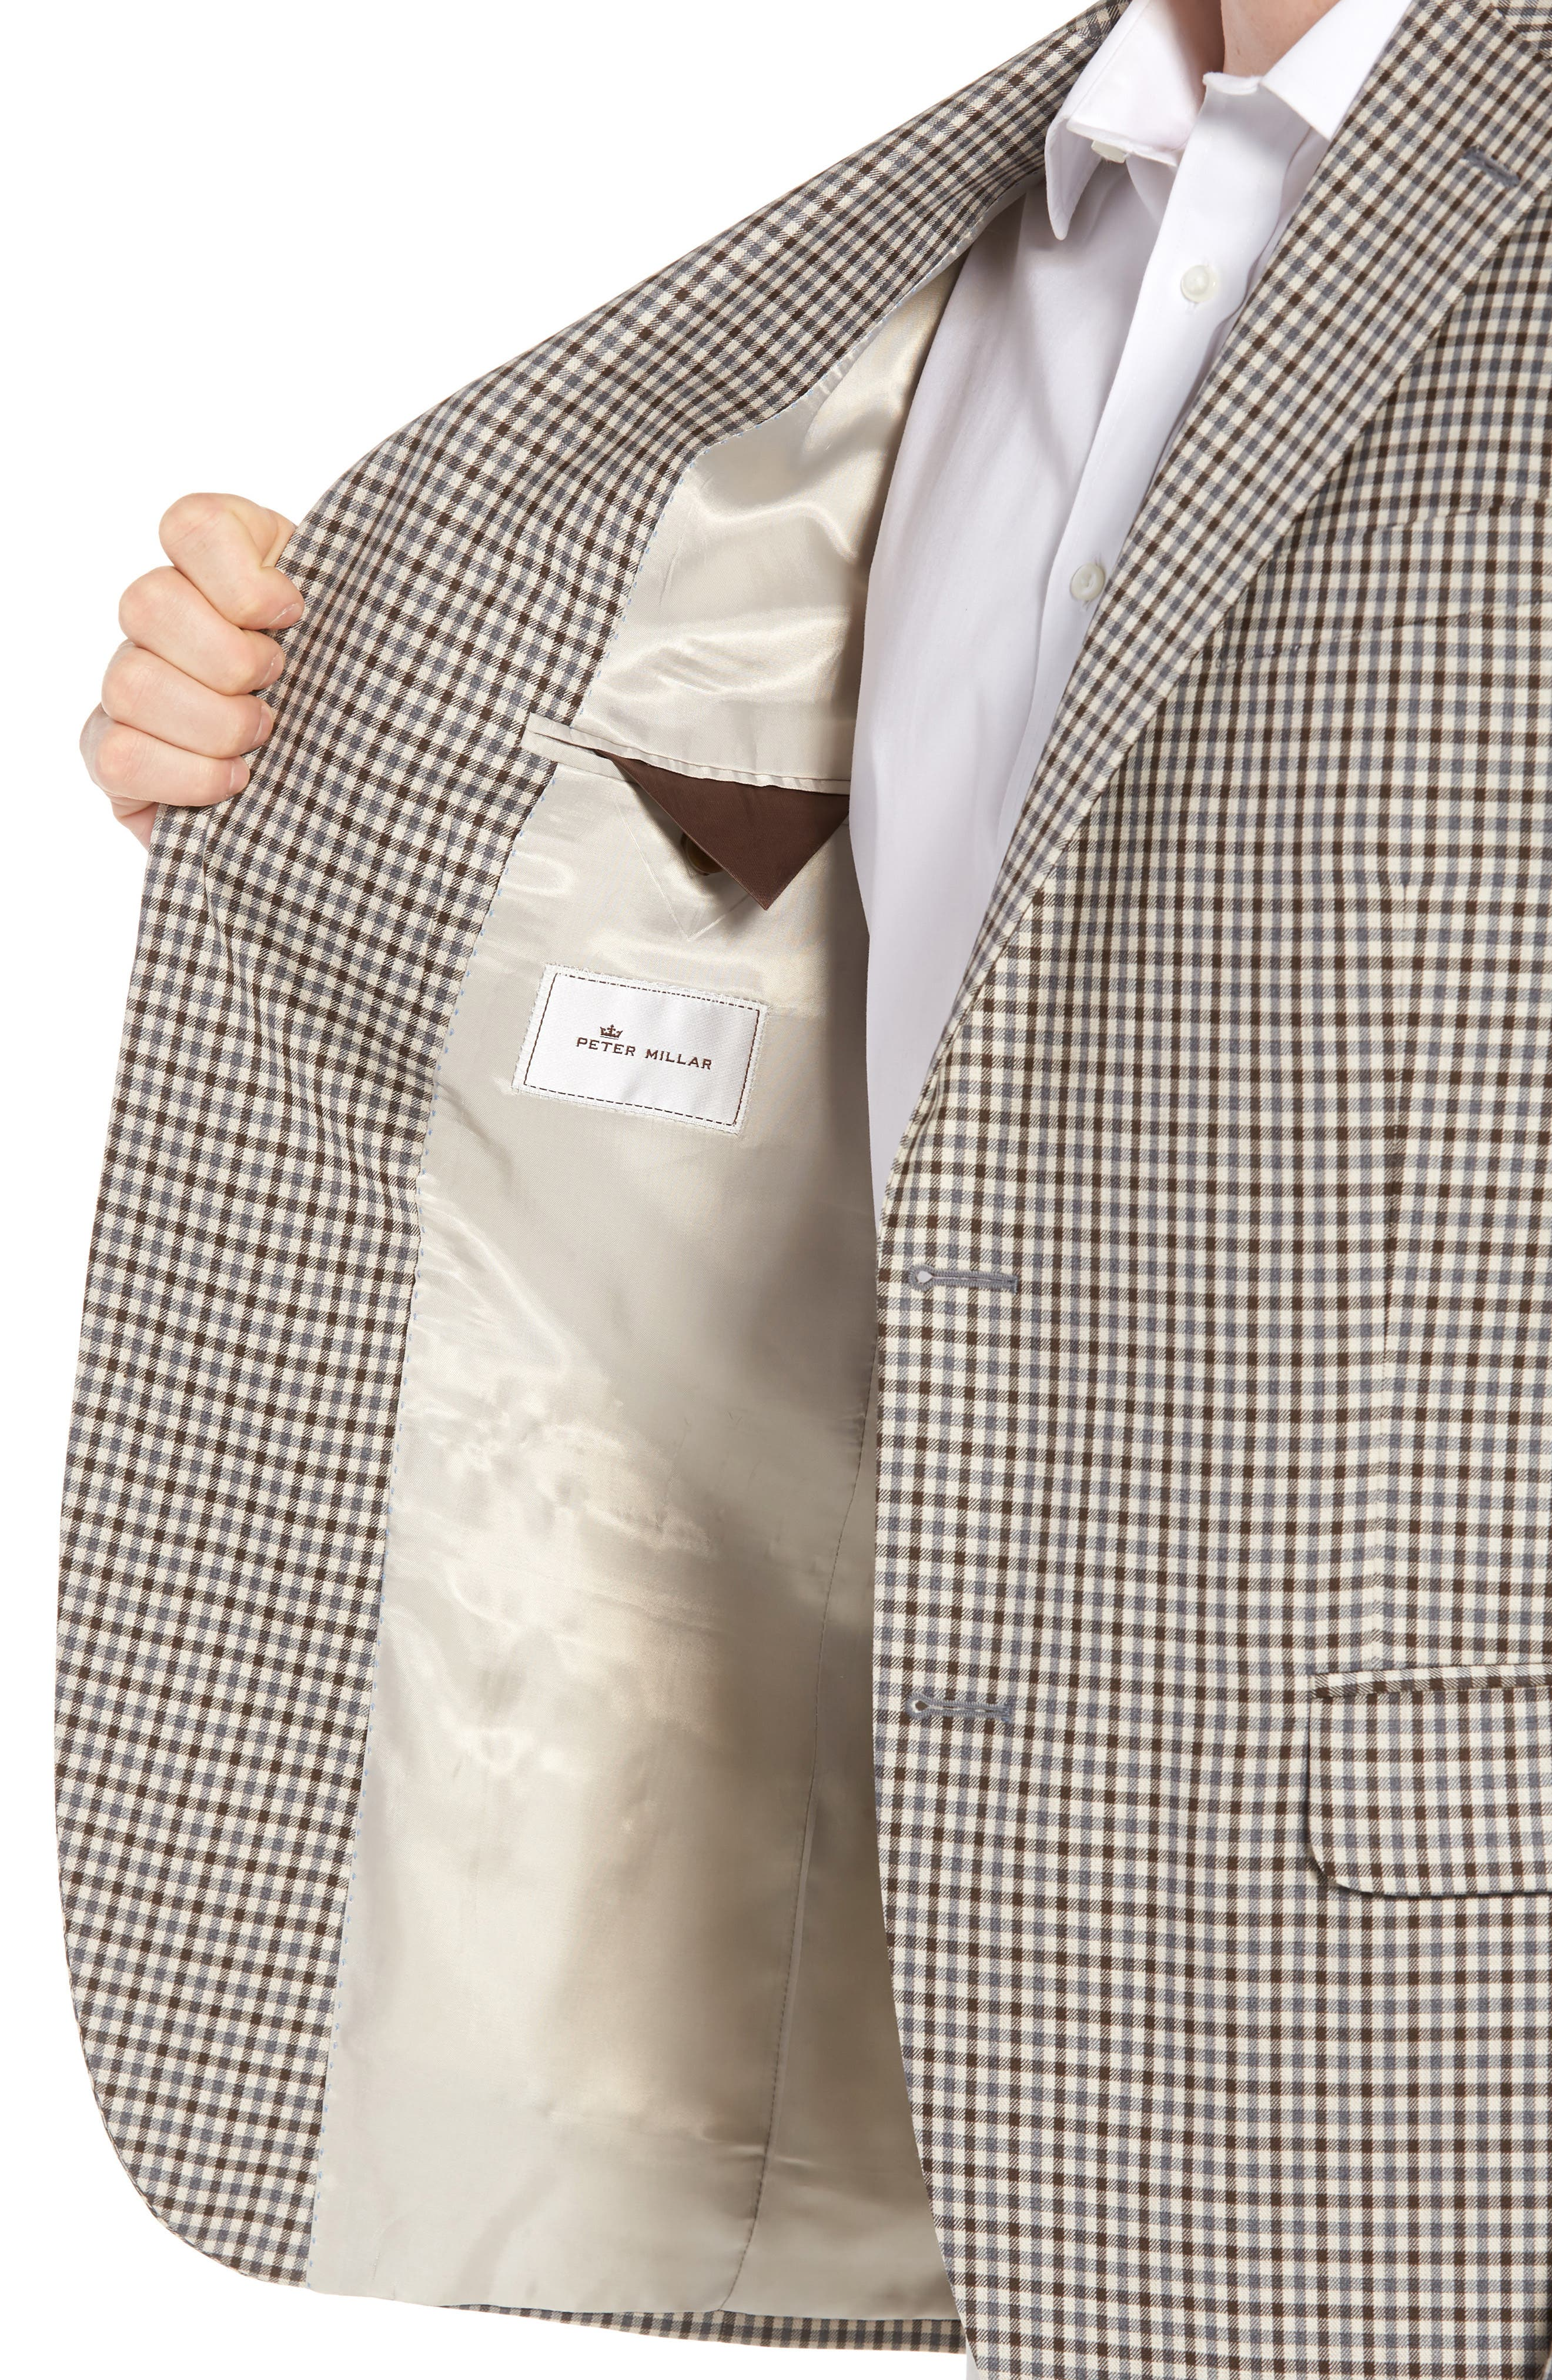 Classic Fit Check Wool Sport Coat,                             Alternate thumbnail 4, color,                             101